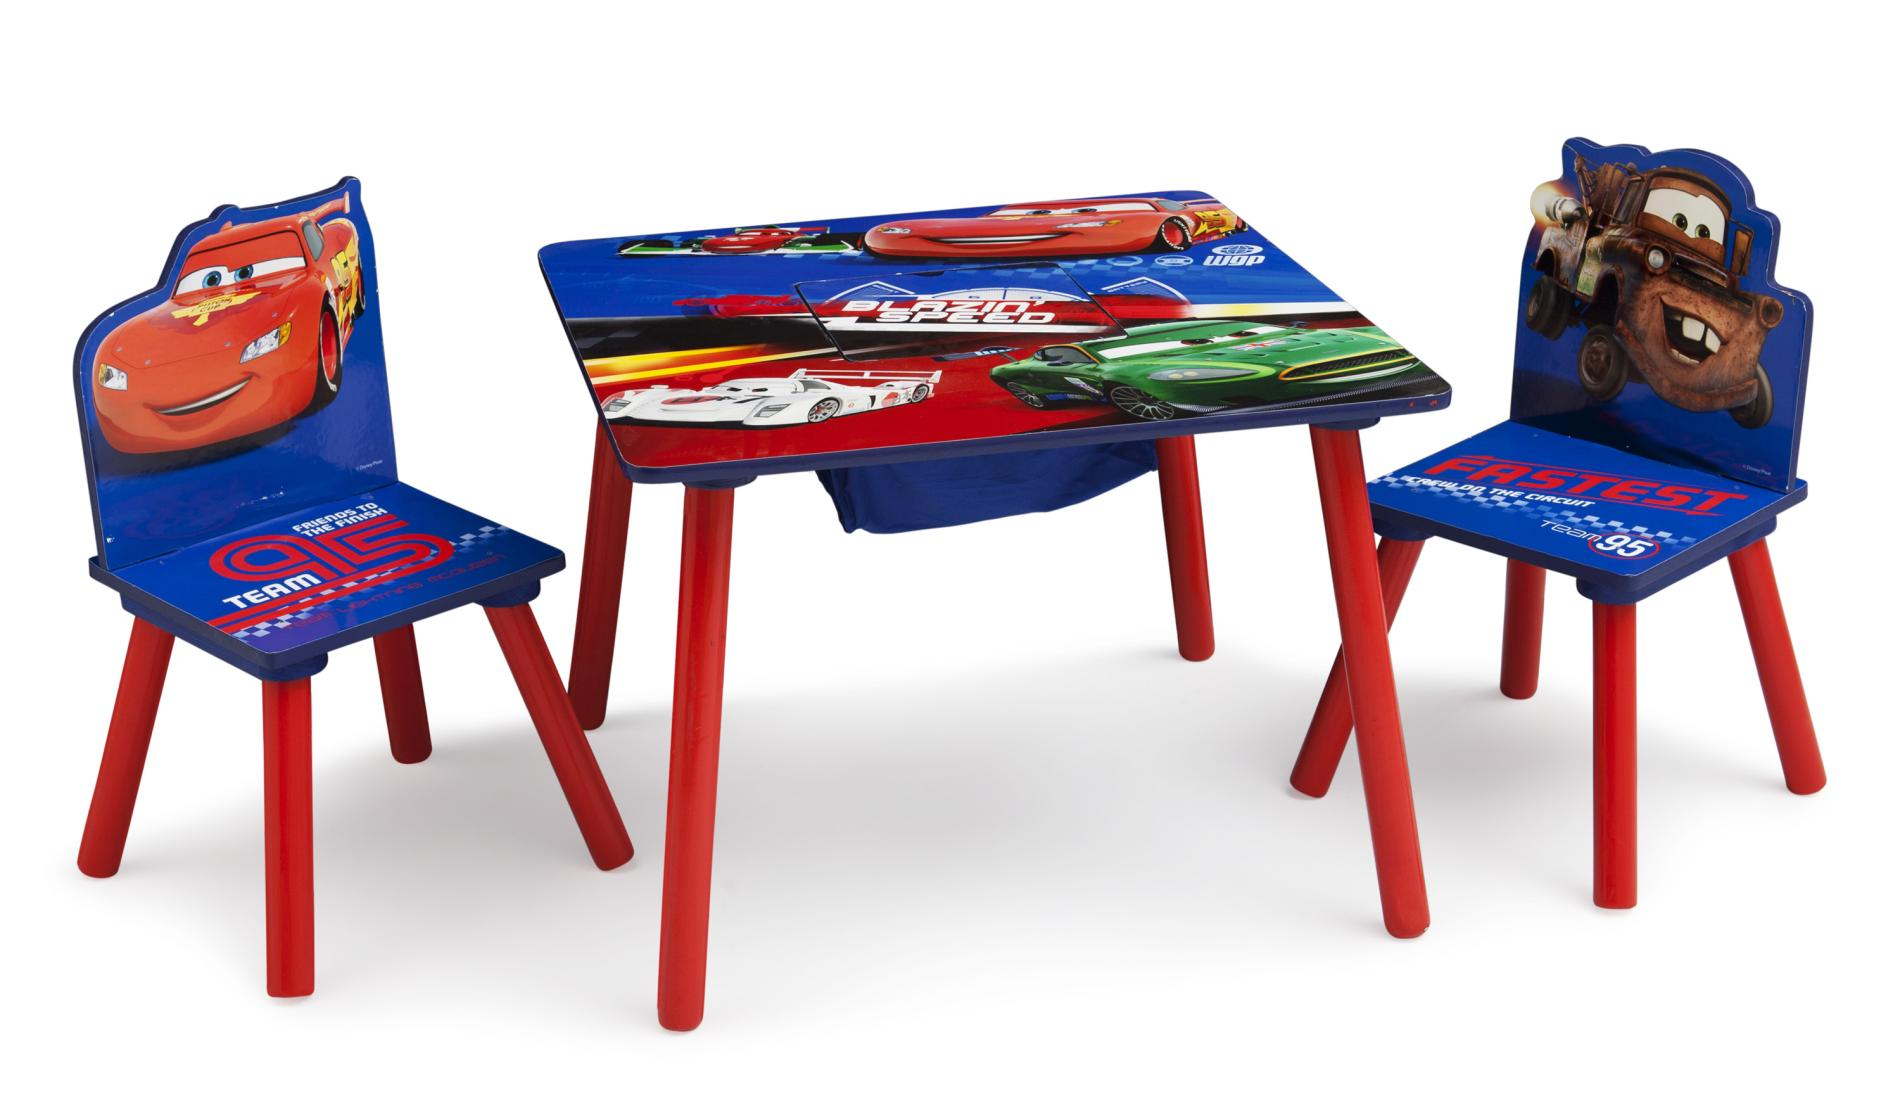 Kmart Small Bedroom Ideas Disney Cars Table & 2 Chairs - Lightning Mcqueen - Baby